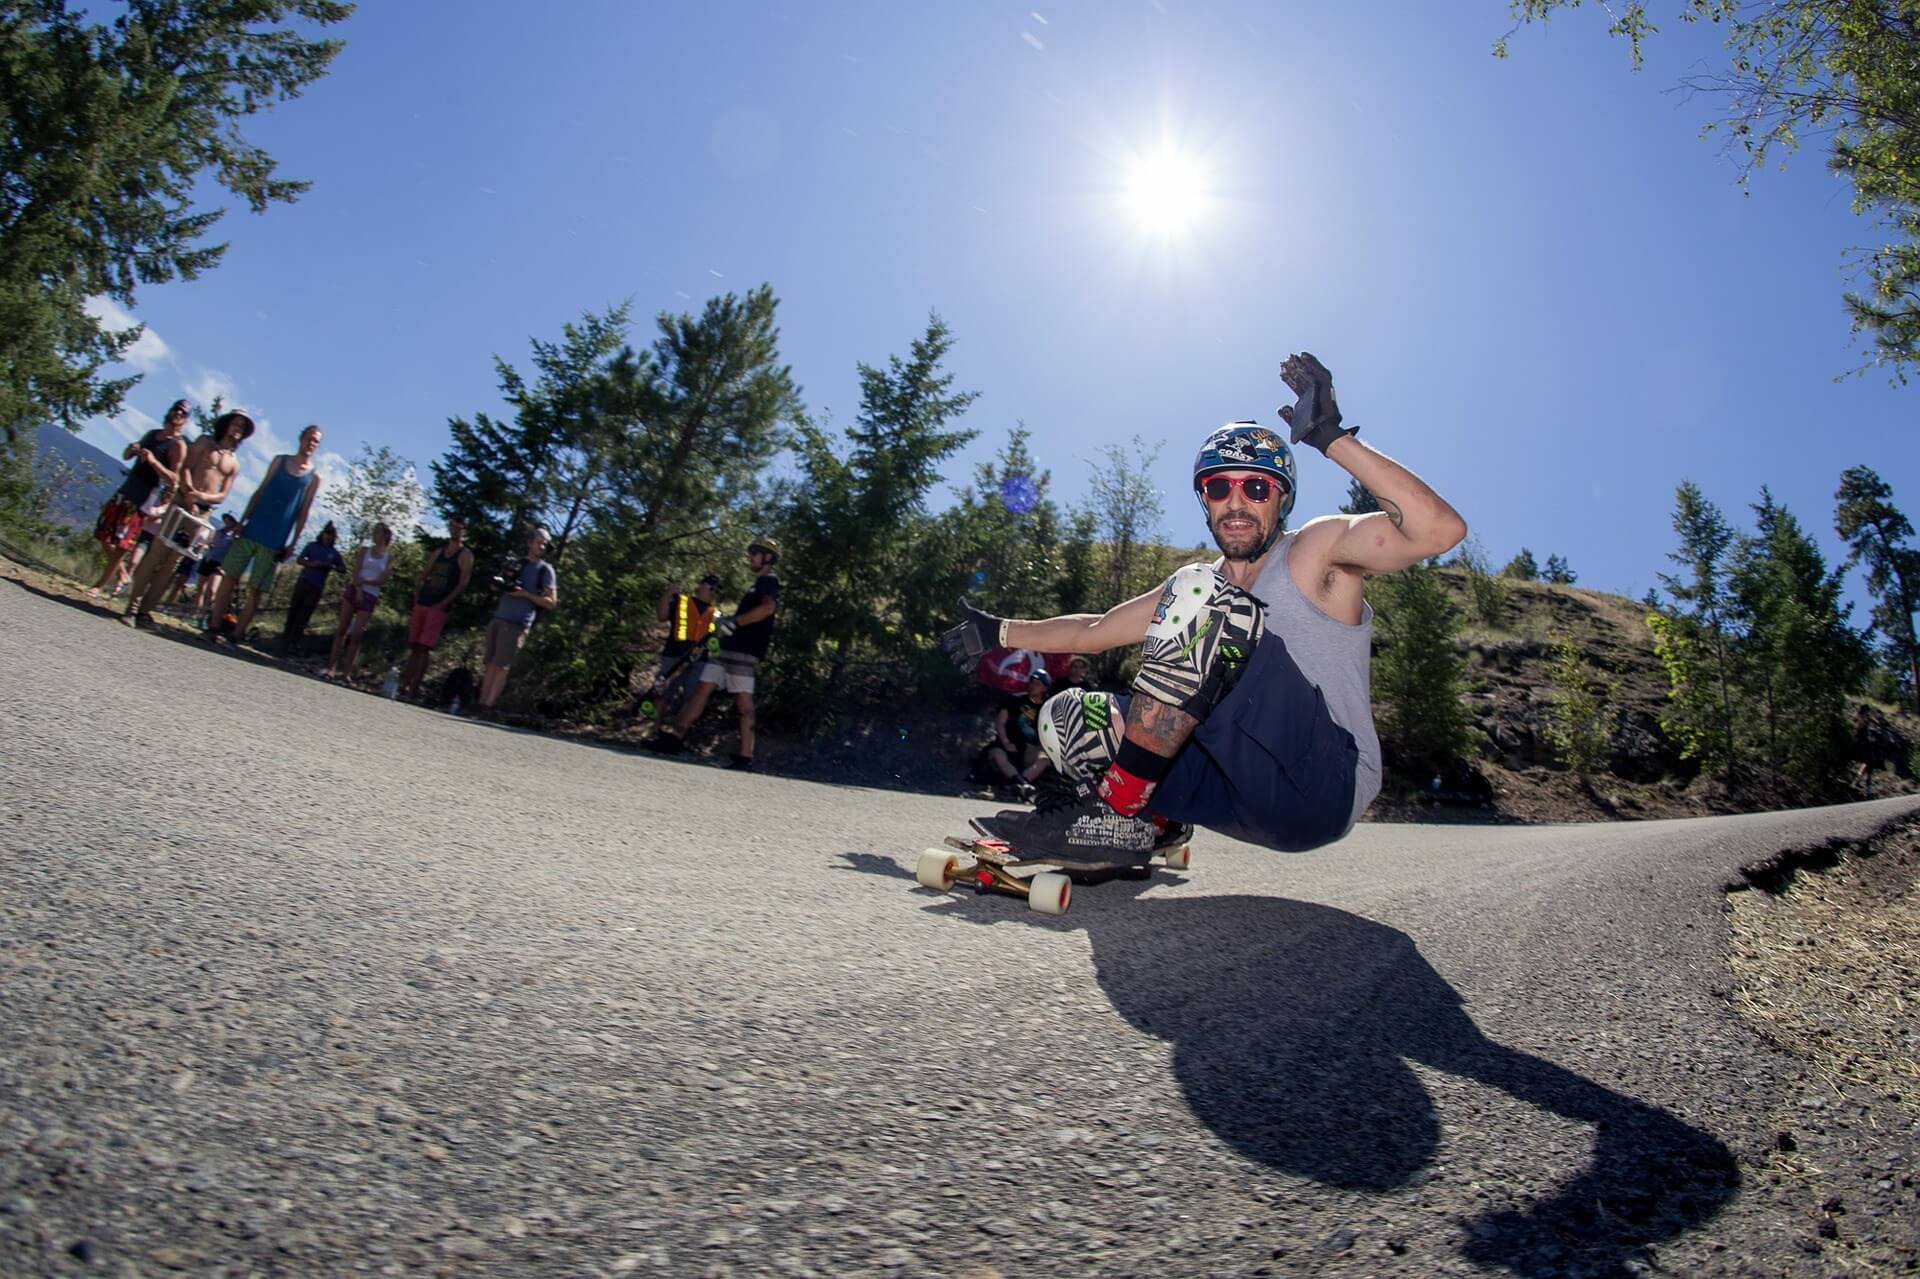 person longboarding on a downhill road